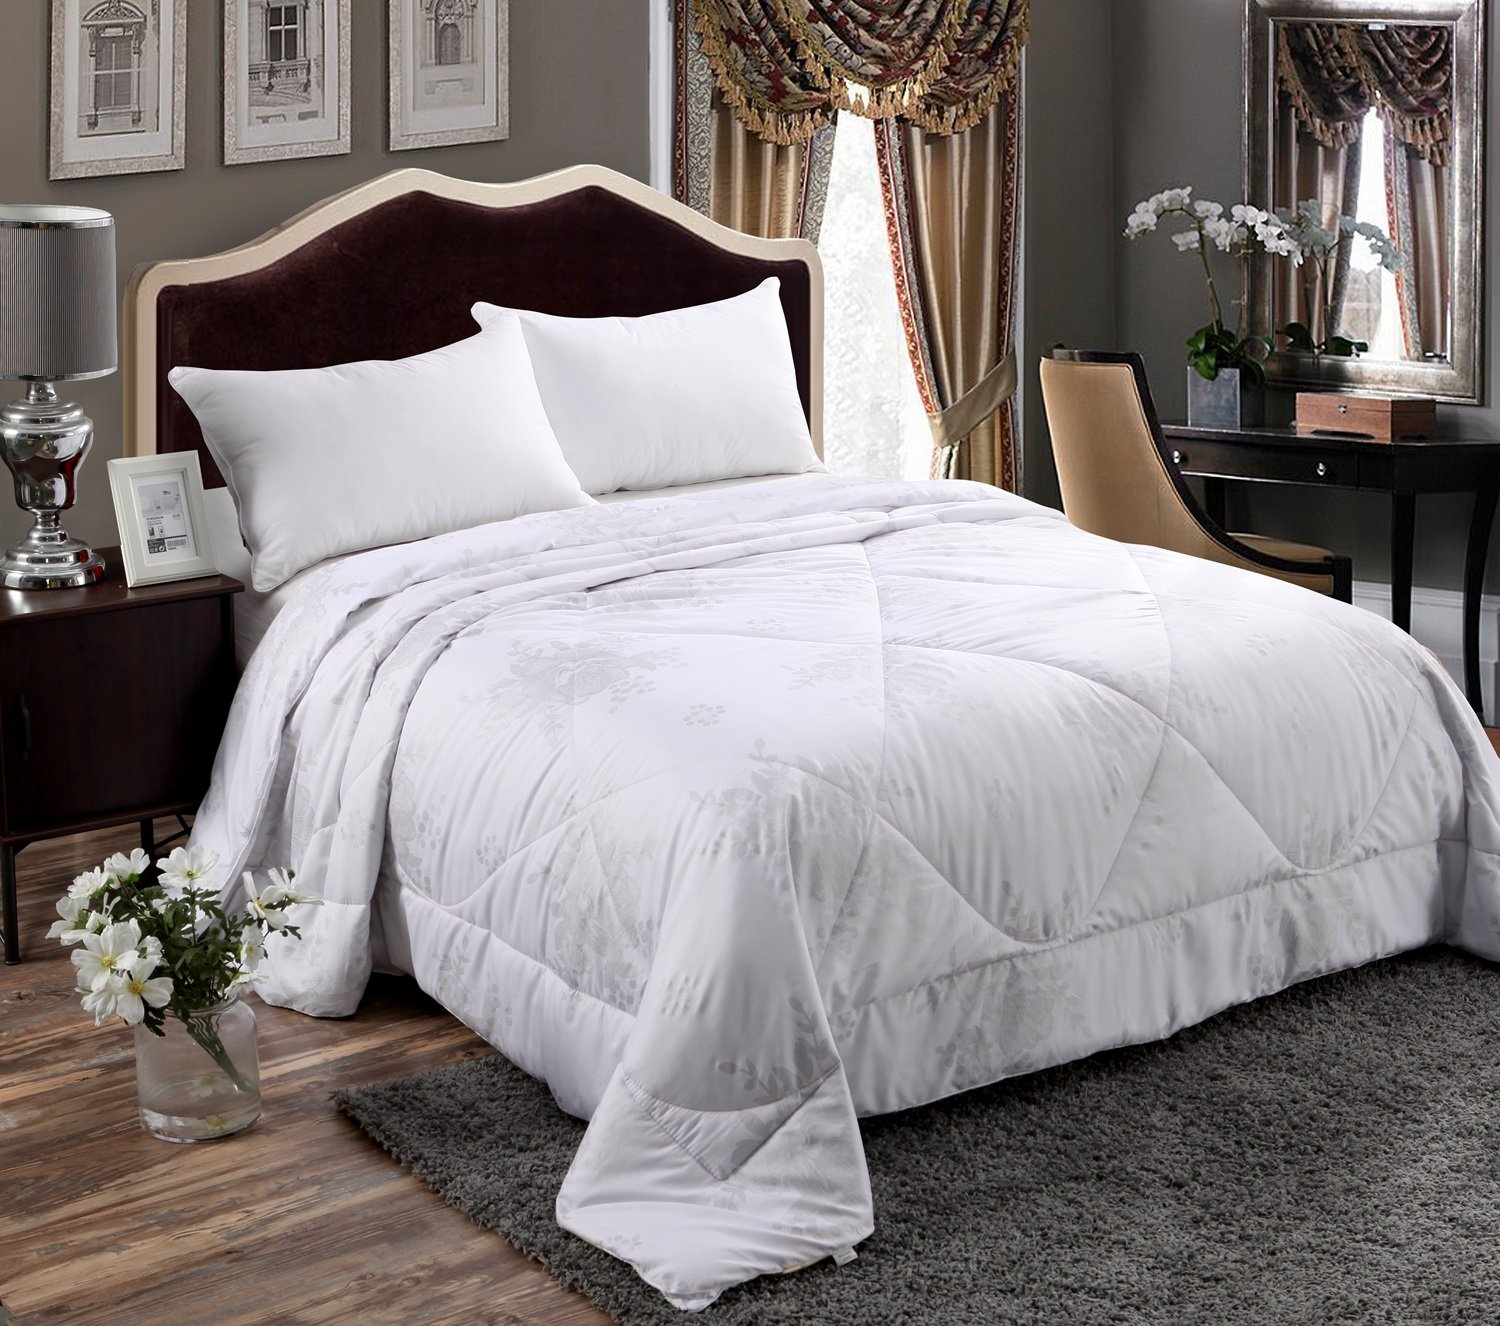 Alicemall Full Size Comforter Duvet Insert White Hypoallergenic Stain Cotton Printing Silky Hollow Fiber Filled Quilt, Twin/ XL Twin/ Full/ Queen/ King/ California King (Full) by Alicemall (Image #2)